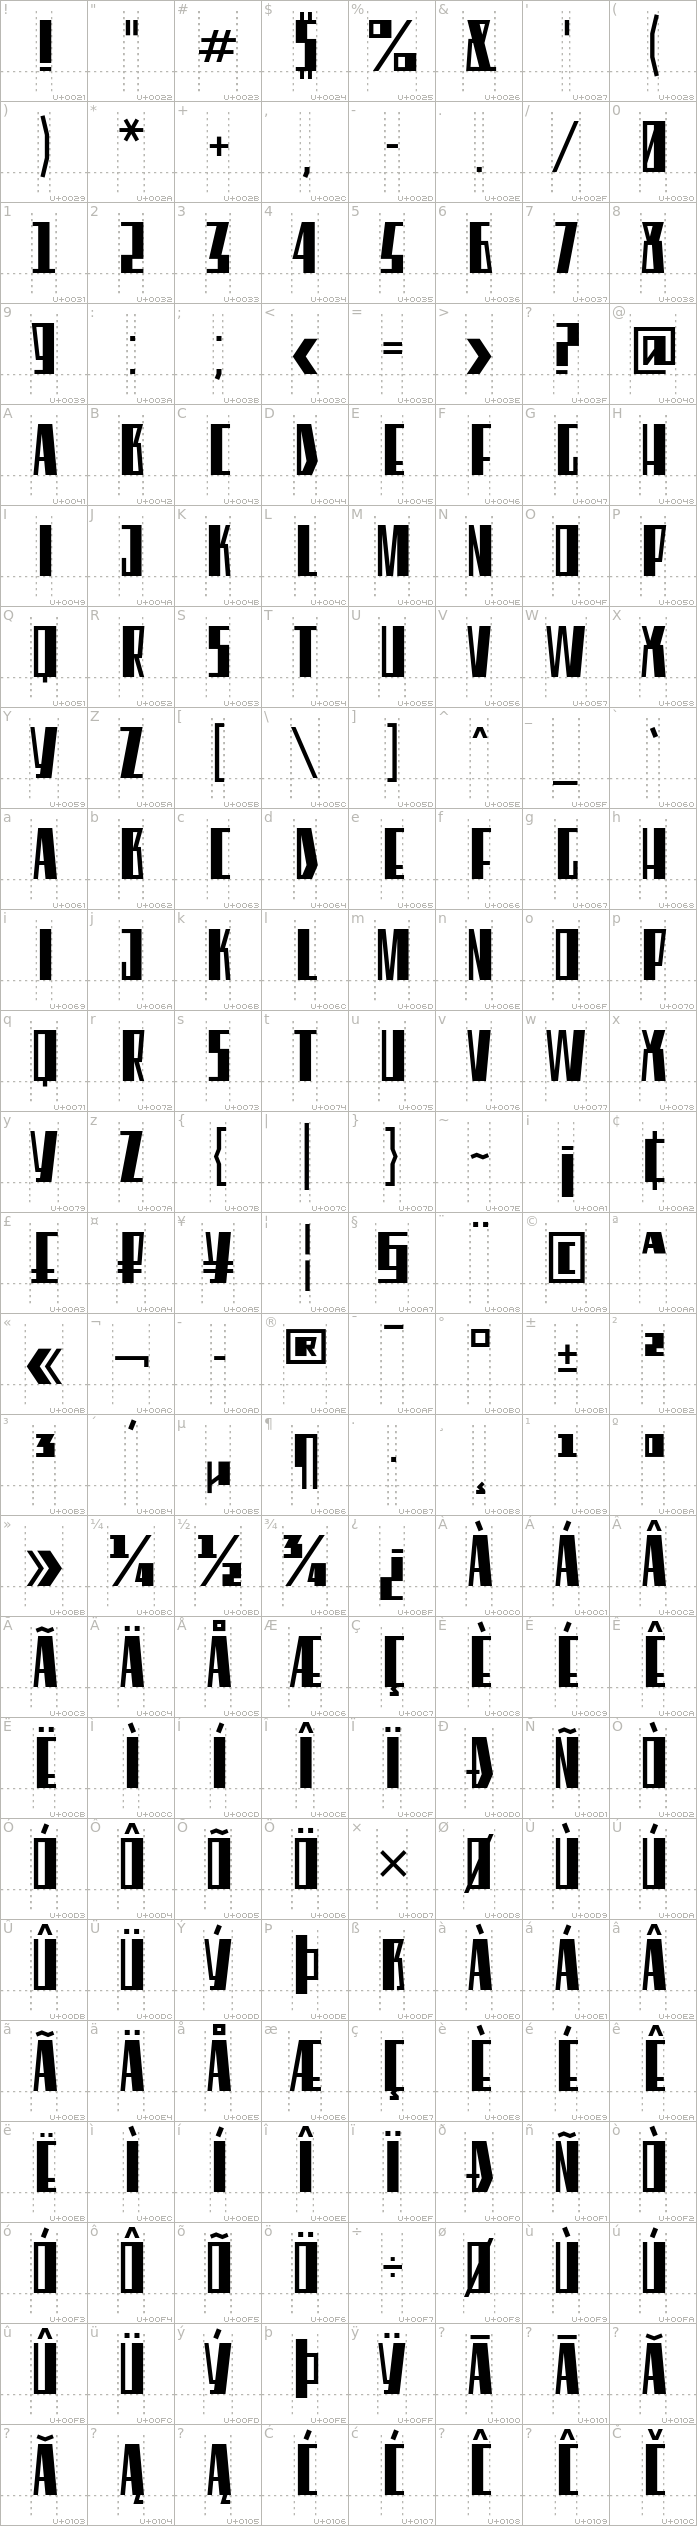 eleventh-square.regular.character-map-1